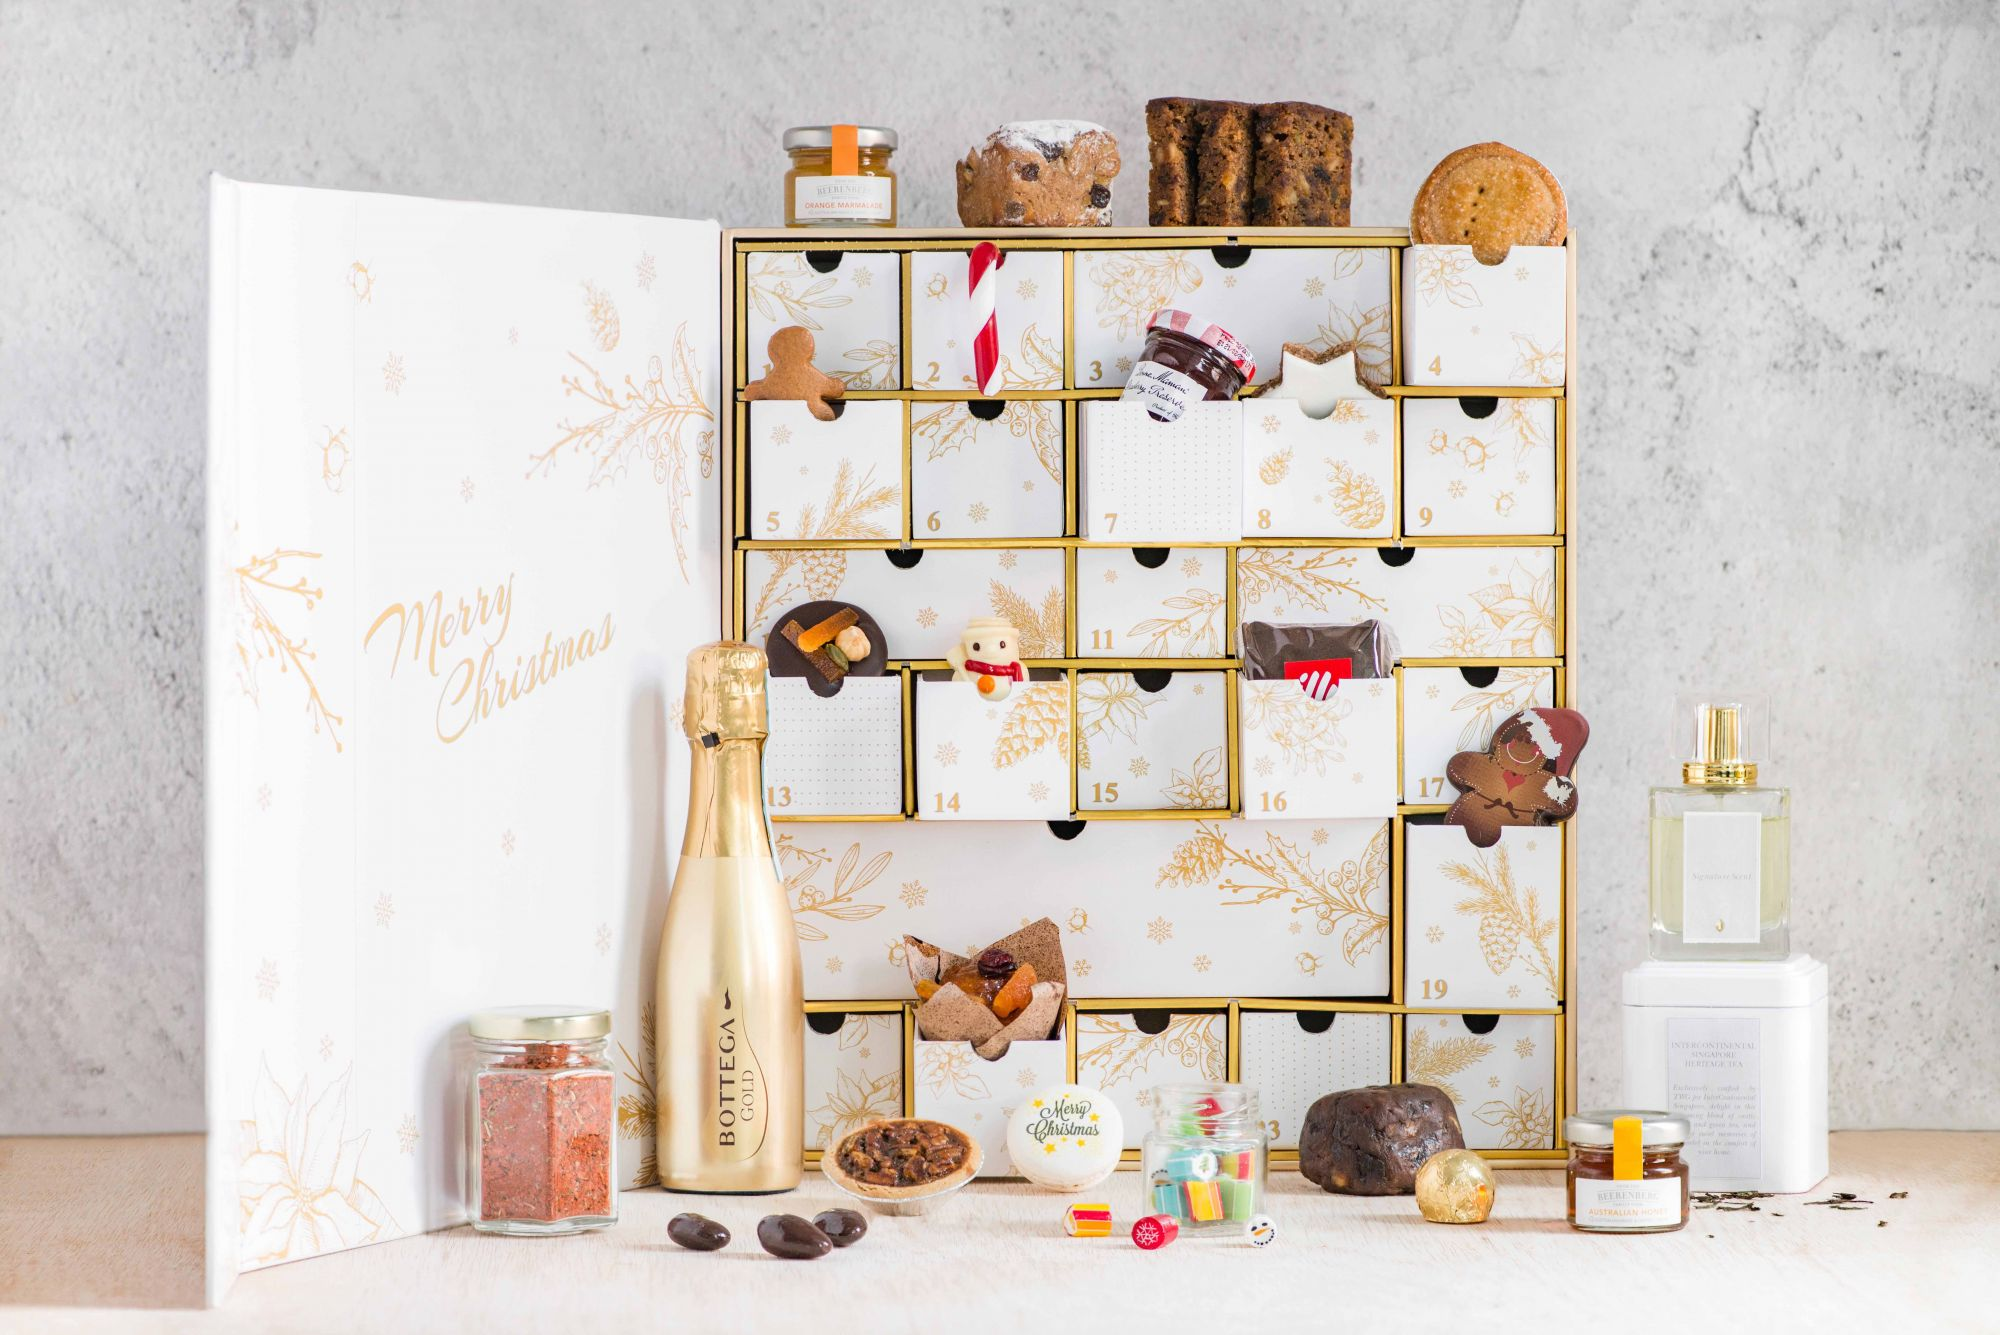 12 Advent Calendars For The Most Luxurious Christmas 2019 Countdown: Diptyque, Charlotte Tilbury, Tiffany & Co. And More